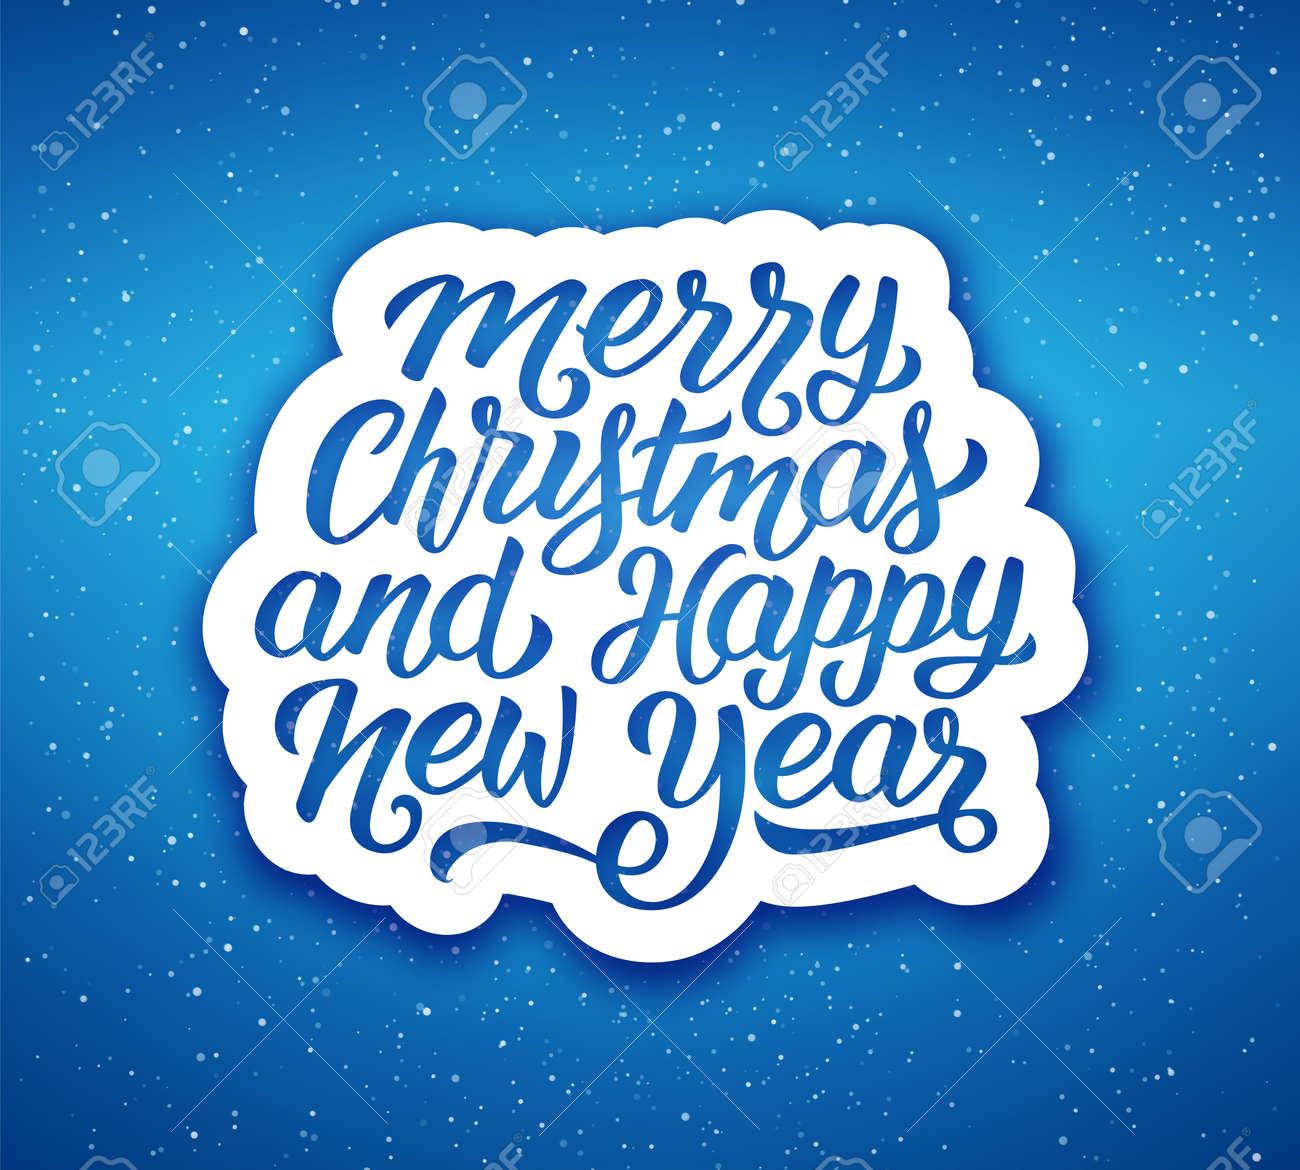 Merry Christmas And Happy New Year Lettering Text On Label Over